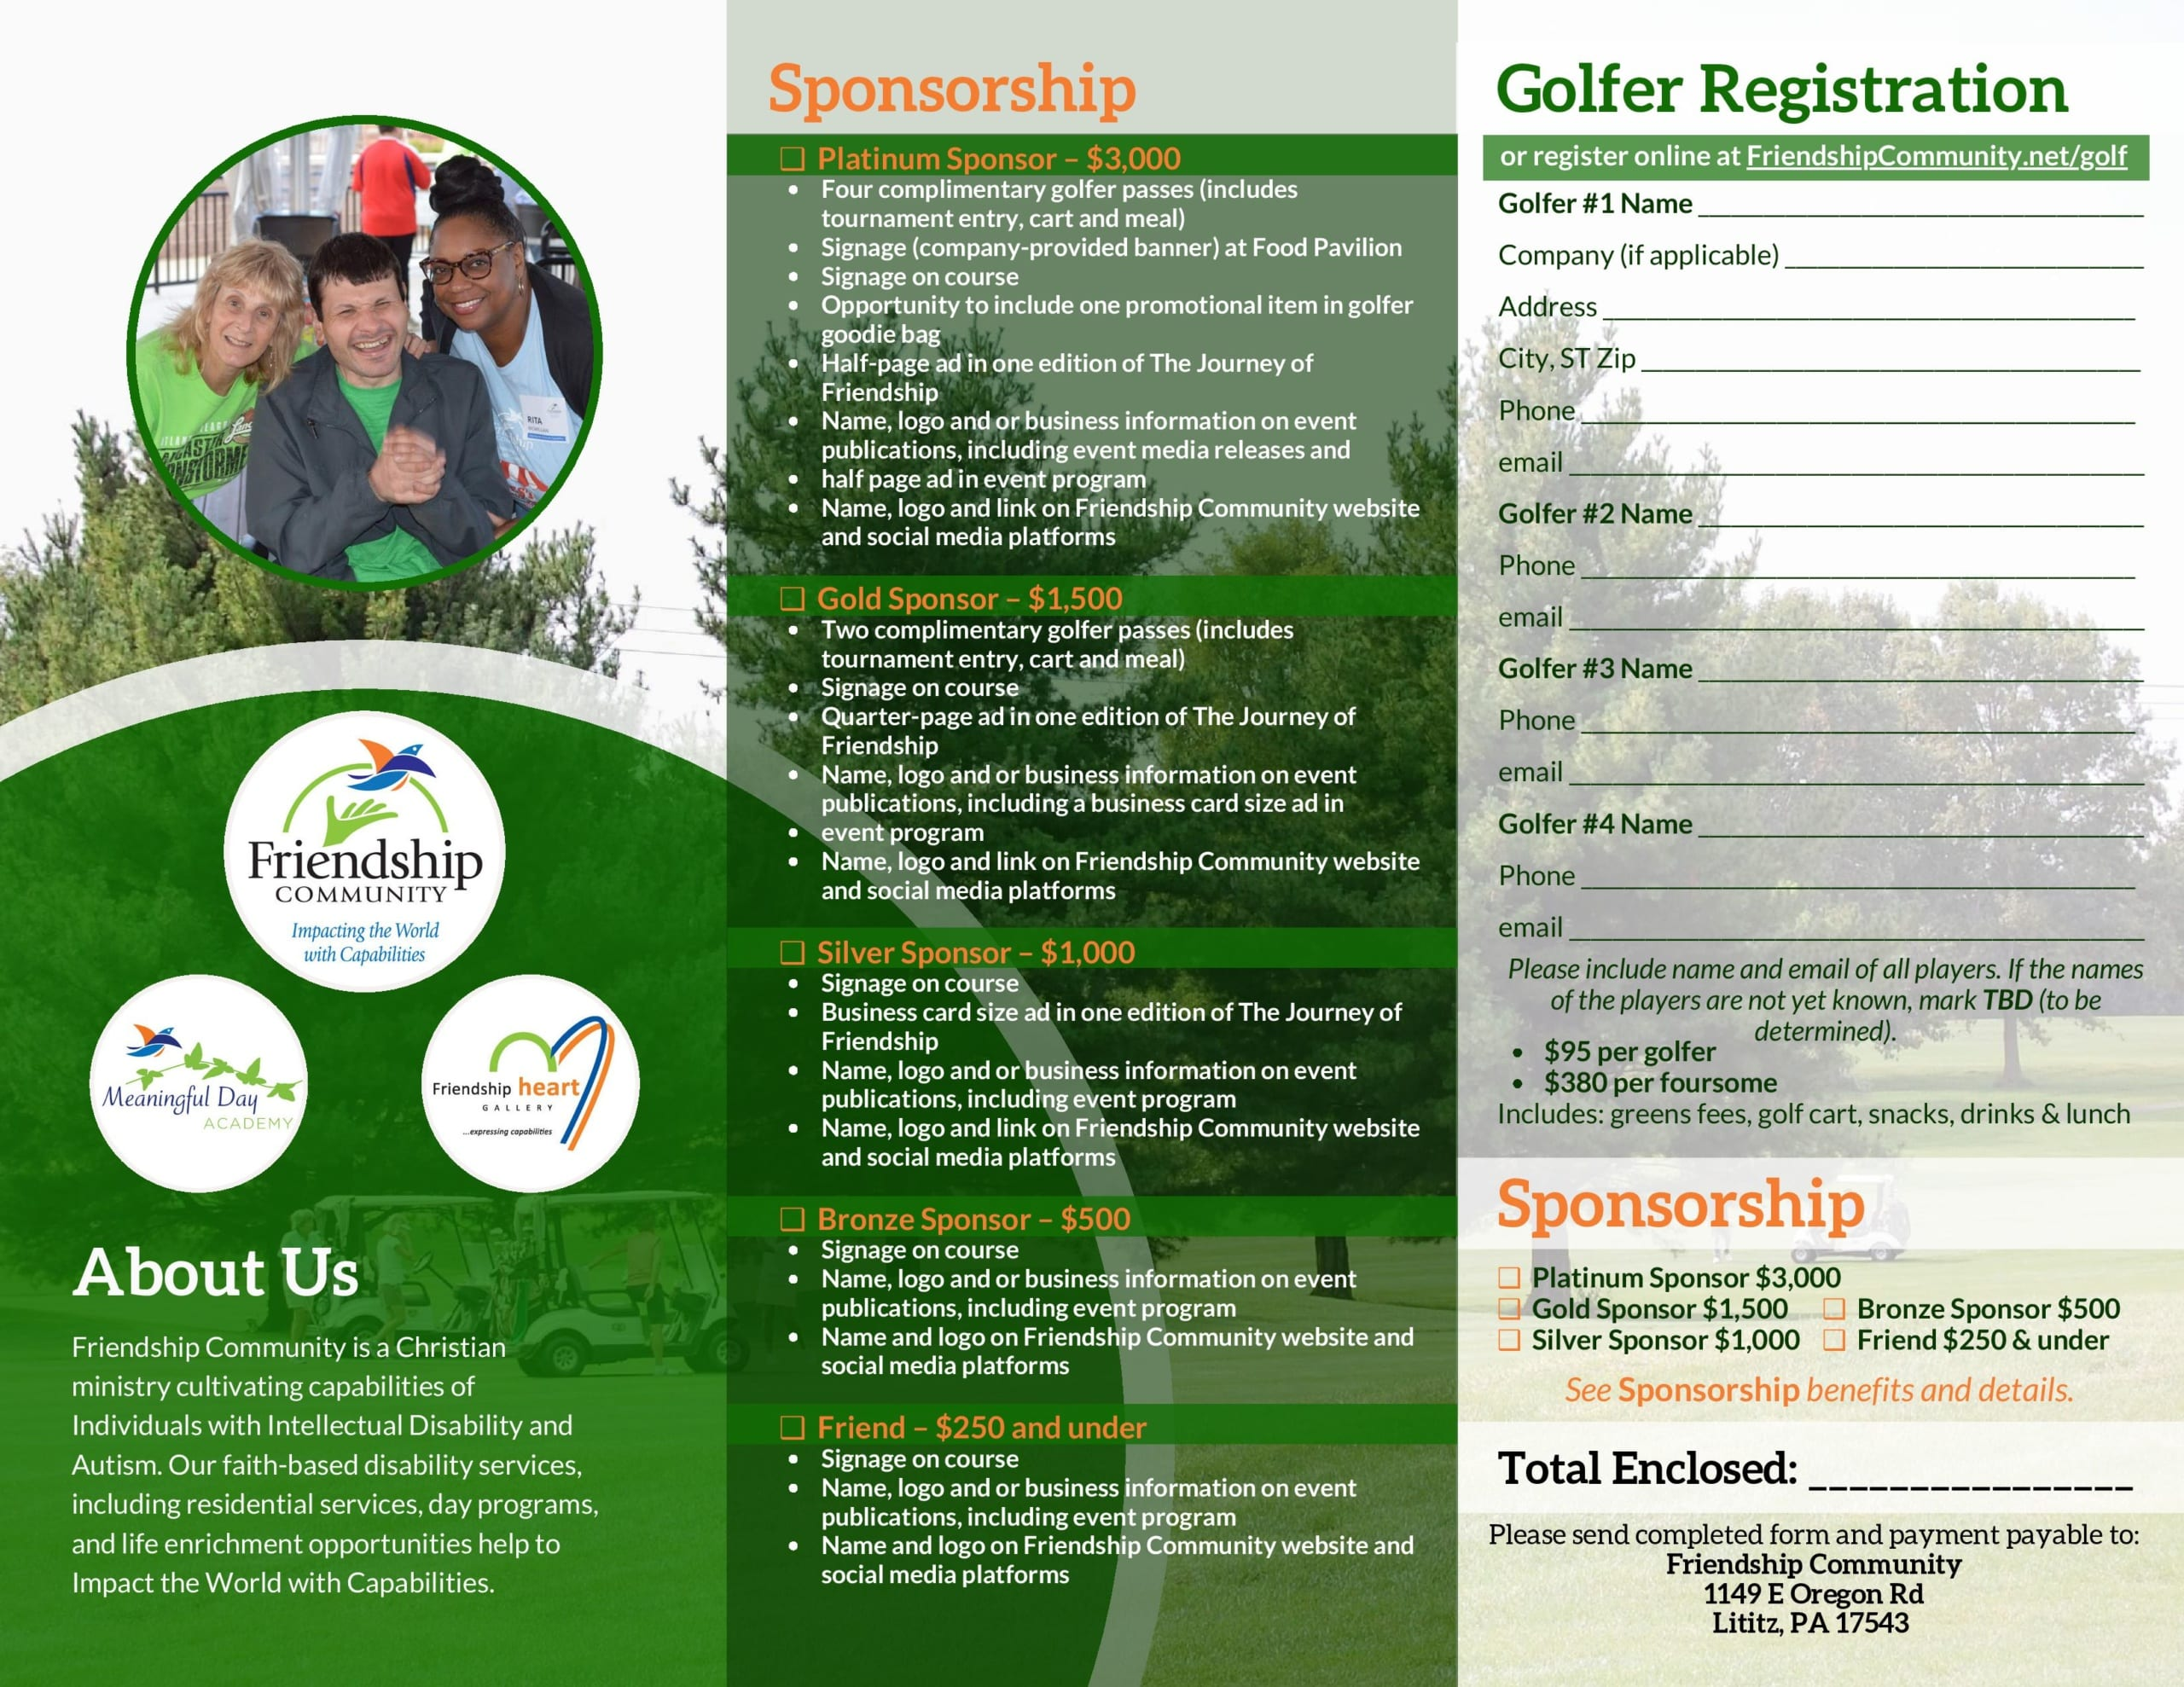 Friendship Community - Irvin C. Enck Memorial Golf Tournament Thursday, September 10, 2020